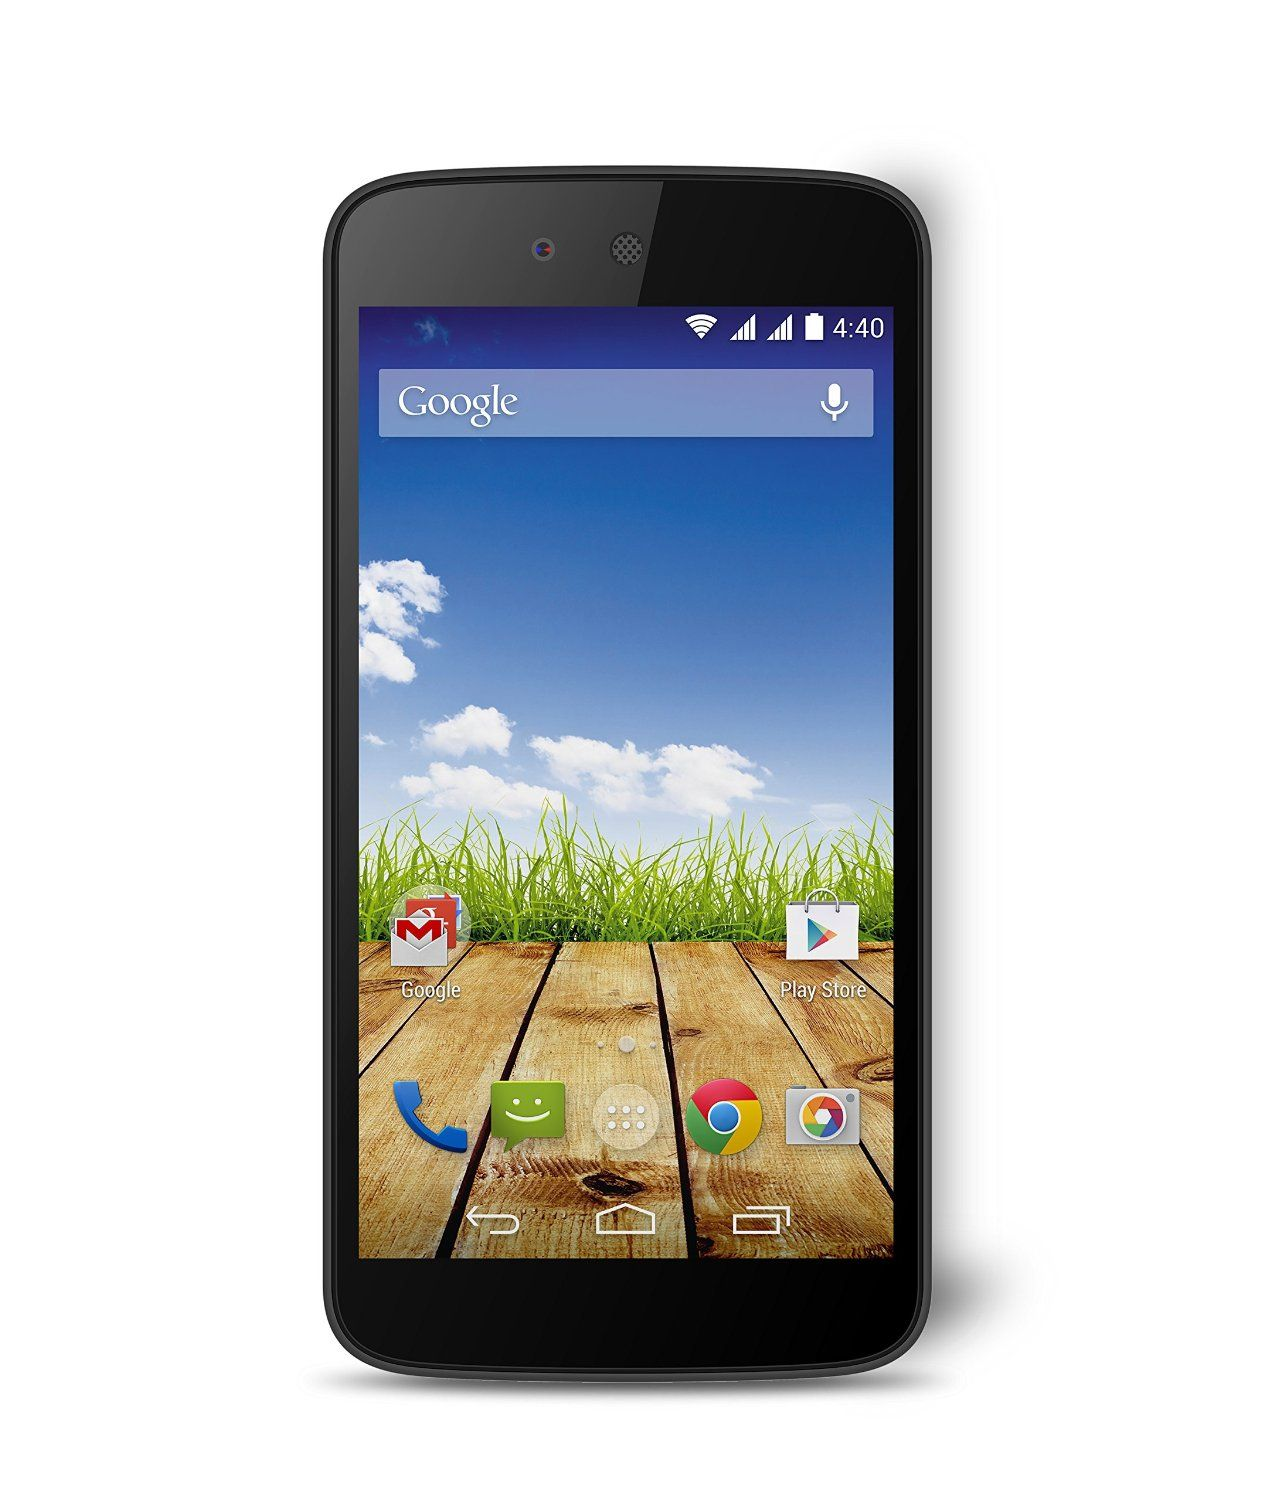 Best 5 Budget Micromax Android Phones Android one